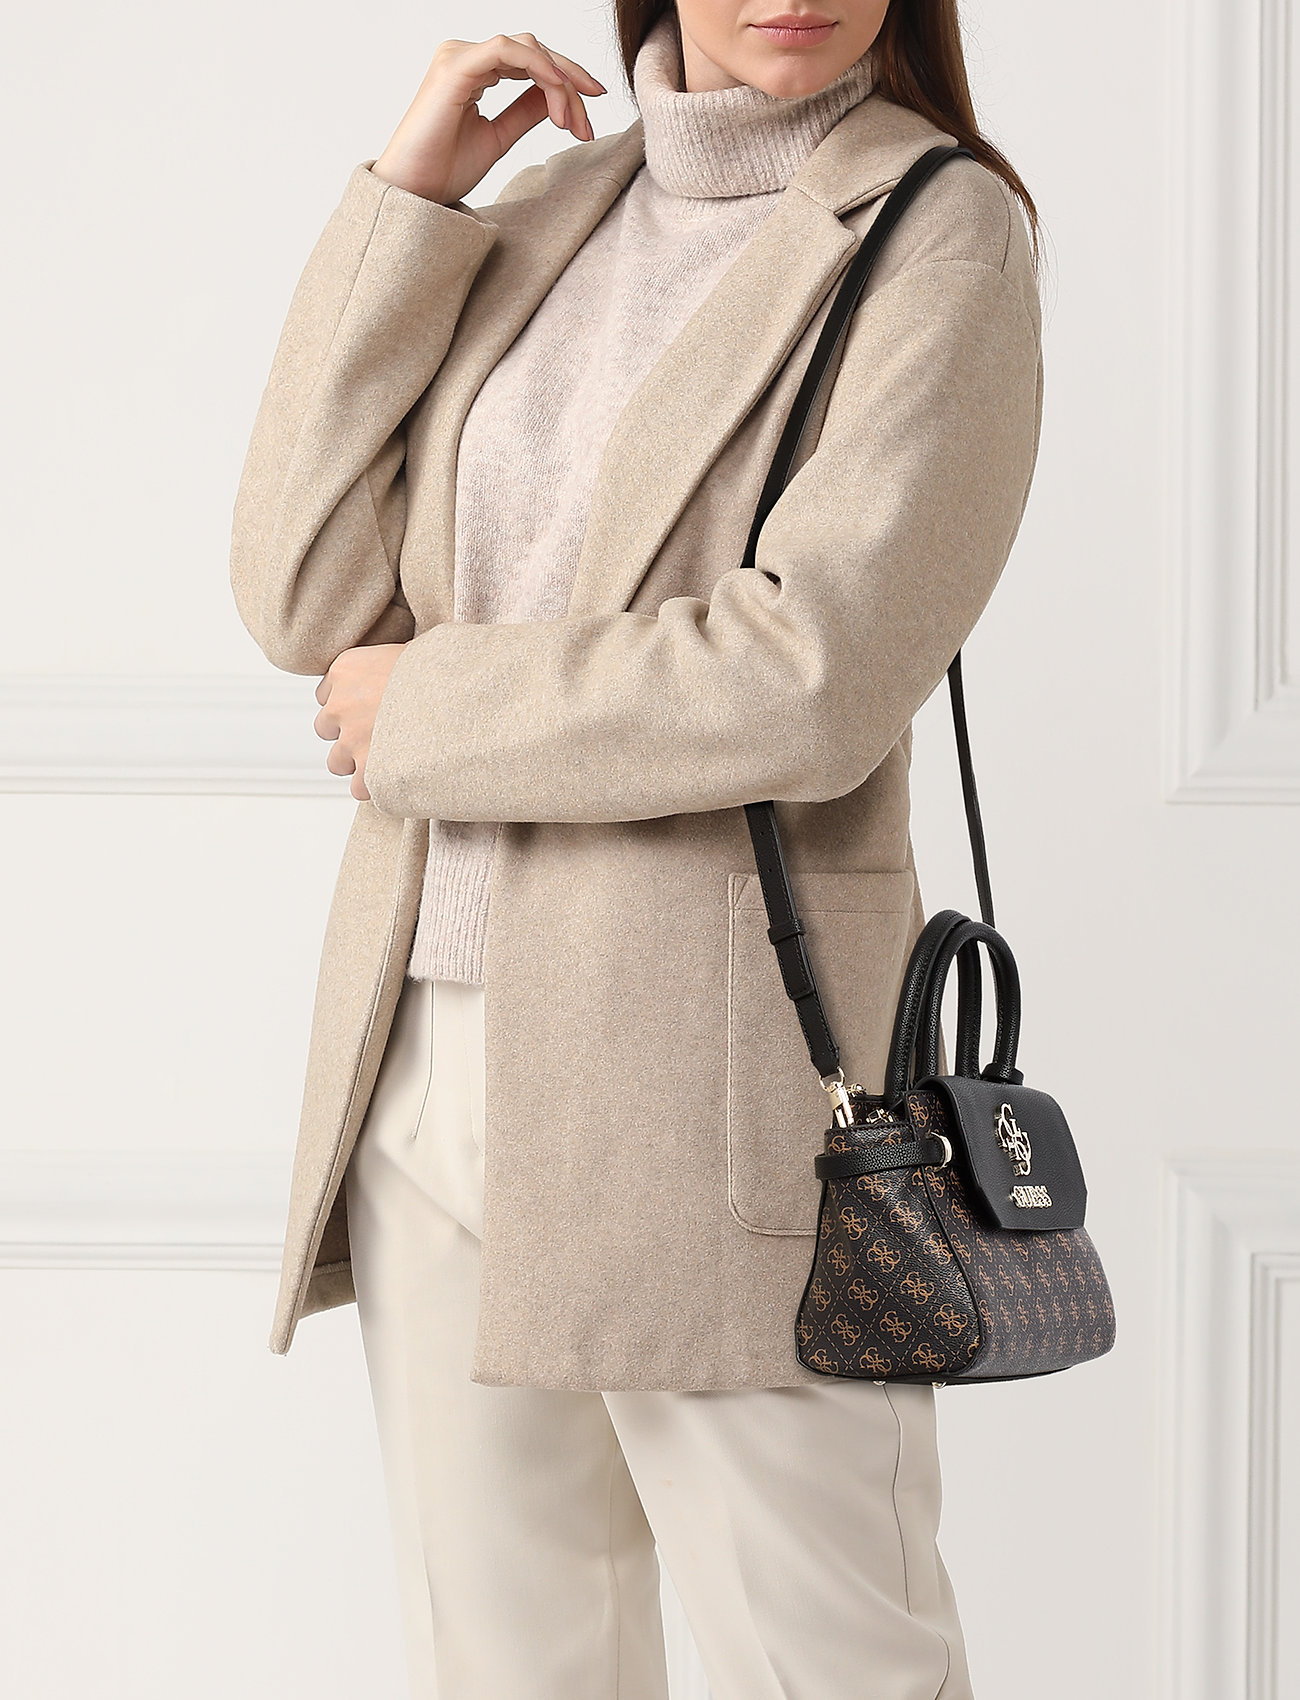 GUESS ESME SMALL SOCIETY SATCHEL - BROWN